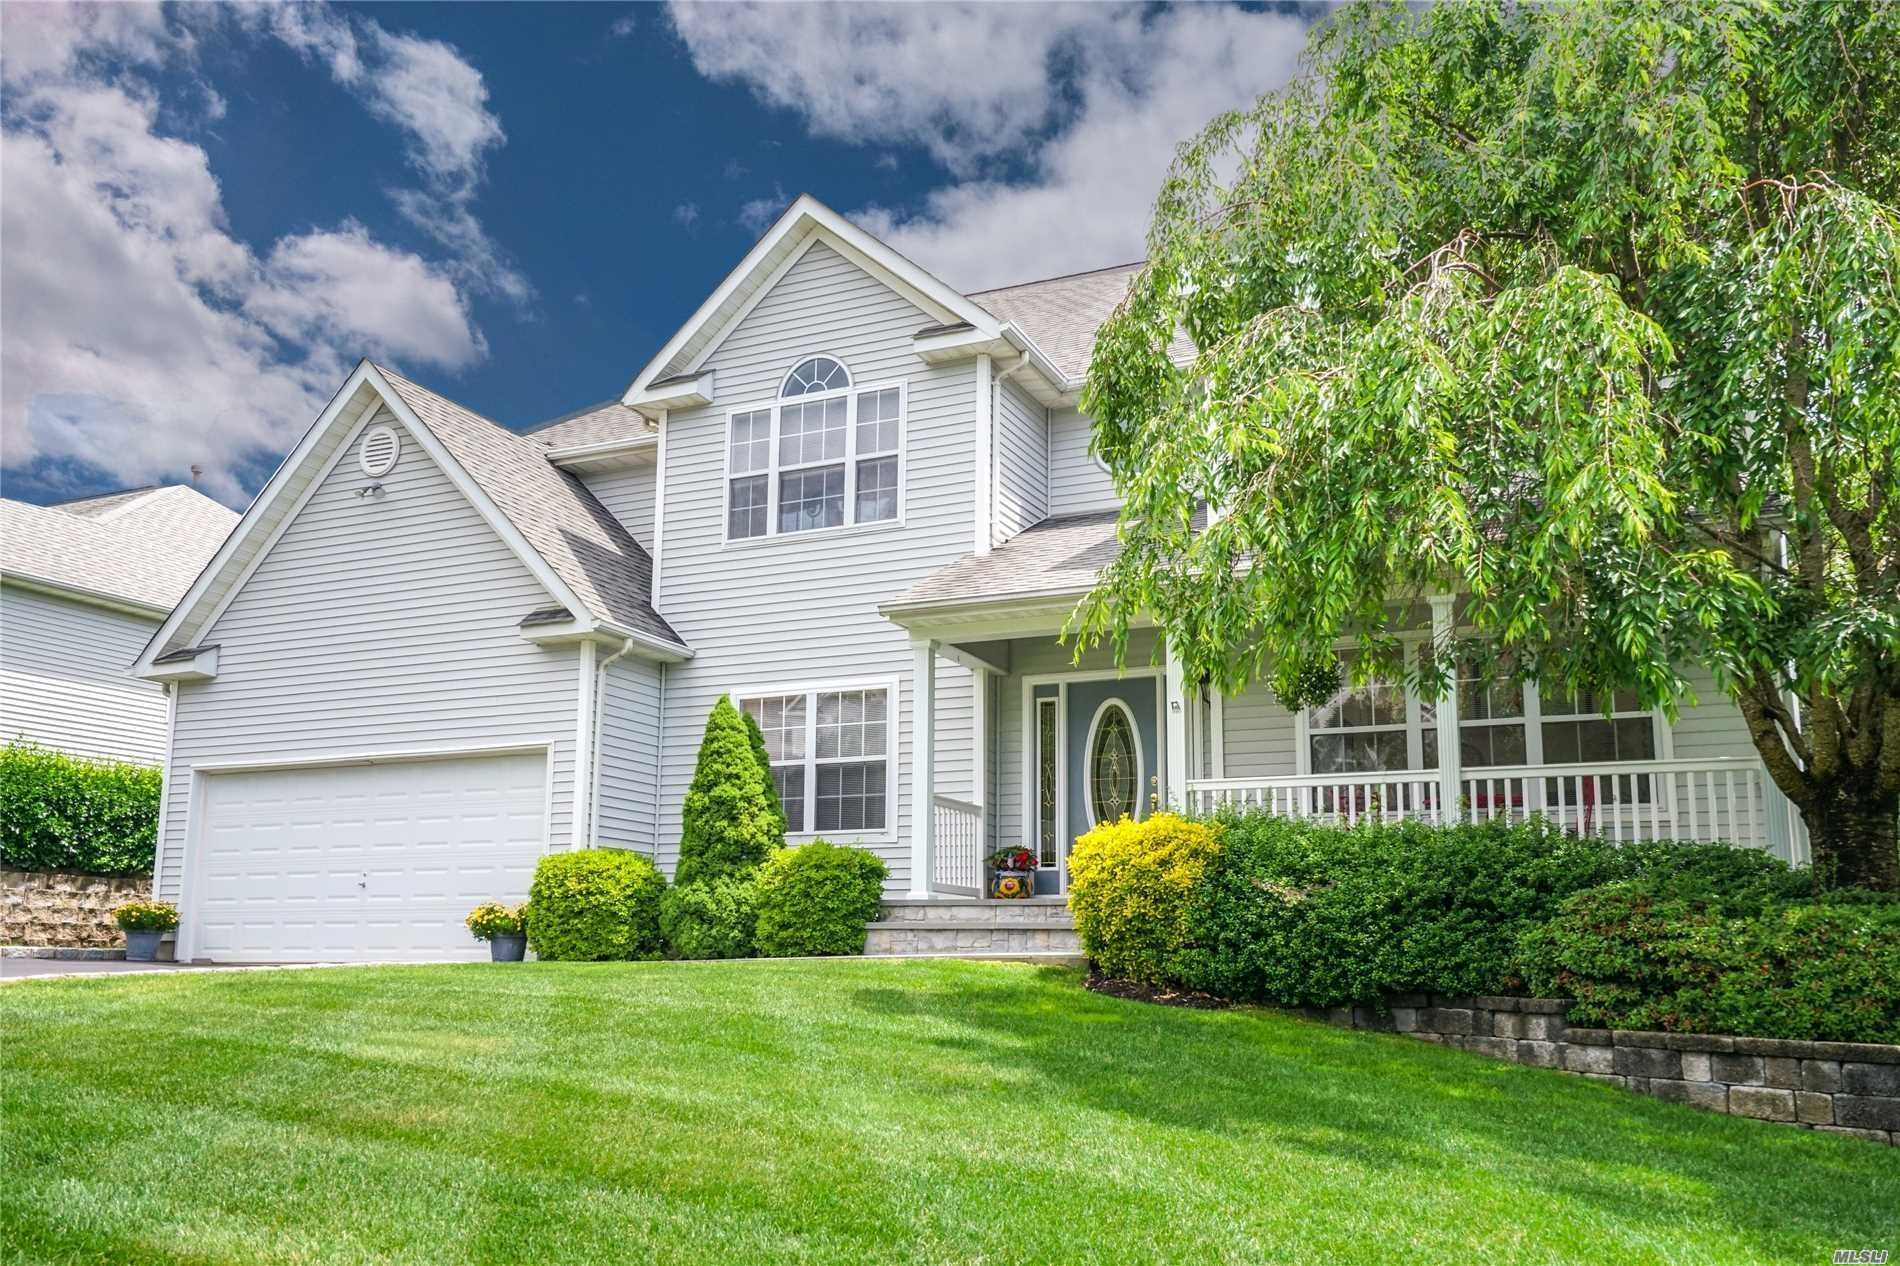 Diamond Designer Victorian Features 4 Bedrooms, 2.5 Baths, Master Suite W/Full Bath & Walk In Closets, Sprawling Oak Staircase, Chef's Honey Oak Eat In Kitchen, New Appliances, Spacious Den W/Wood Burning Fp, Entertaining Size Fdr, Hi Hats, Cac, Full Basement W/Ose. This Home Offers Many Upgrades Including Gleaming Hardwood Floors, Vaulted Ceilings, Beautifully Landscaped Yard Backing Nature Preserve, Stunning Brick Patios, Minutes To Wineries, Tanger Outlets & Restaurants